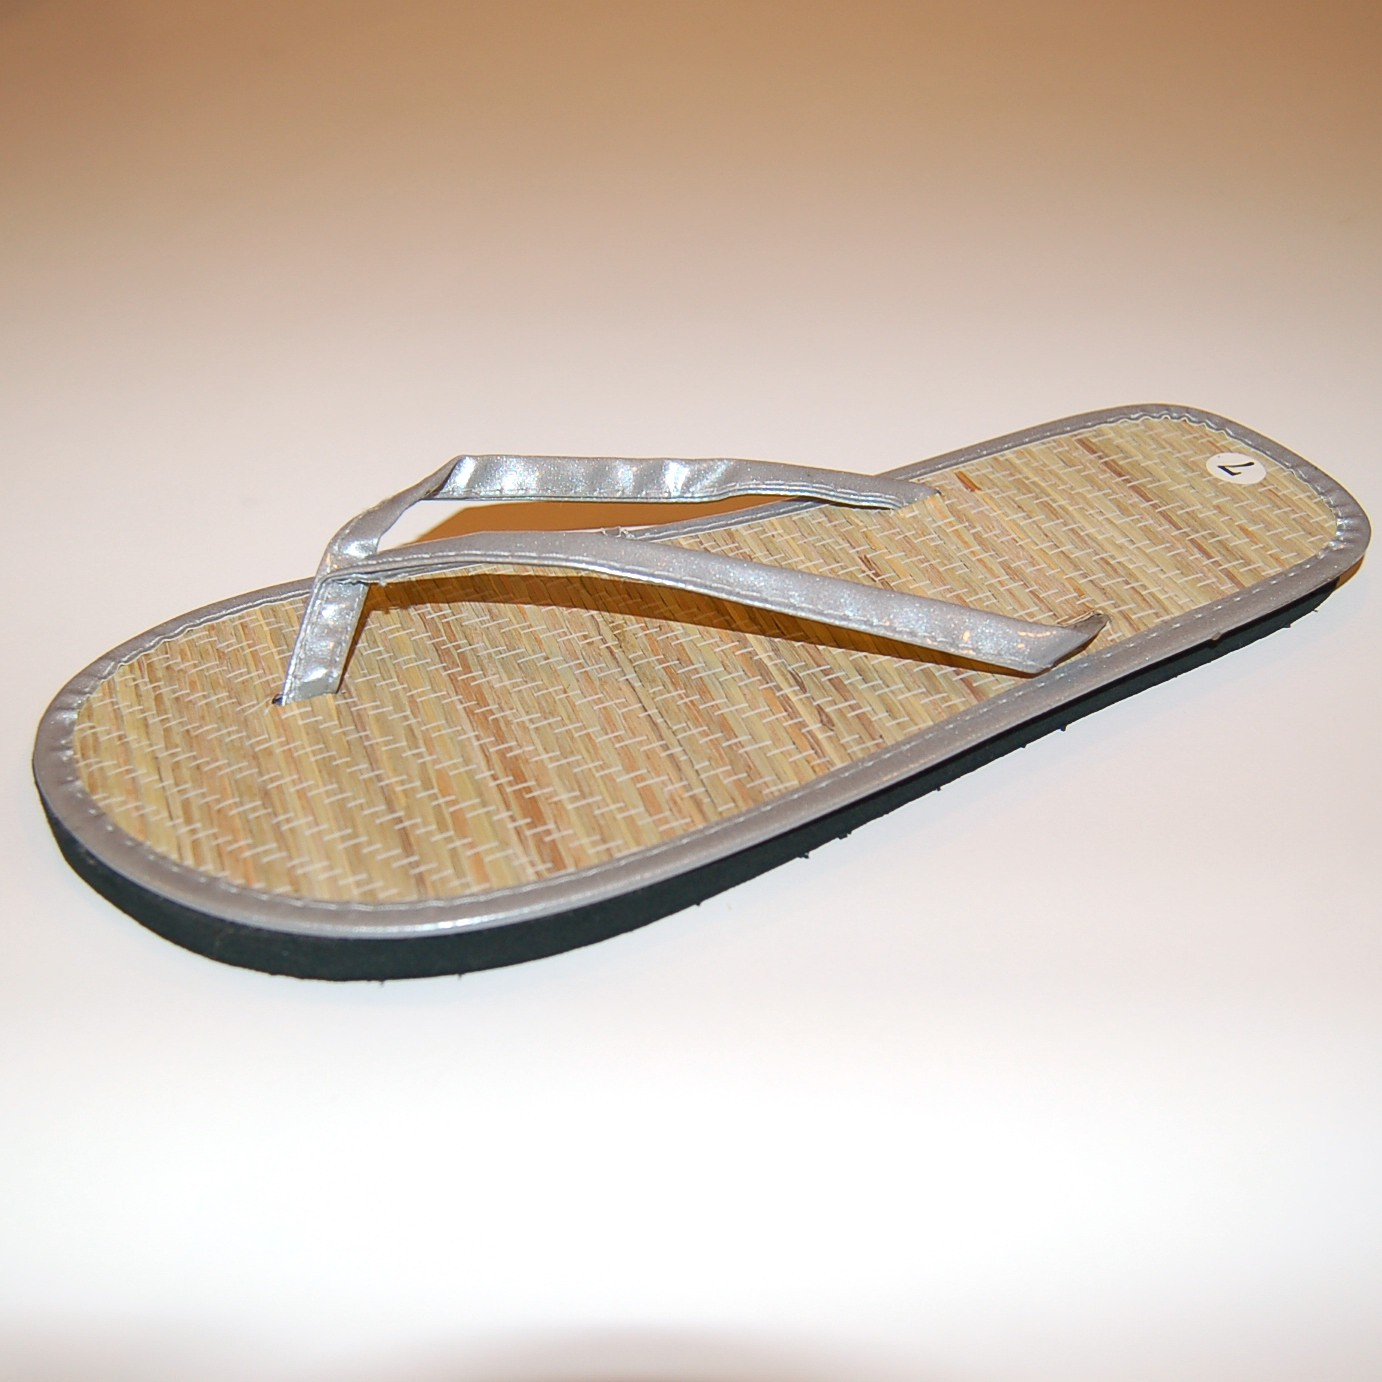 Buy low price, high quality bamboo flip flops with worldwide shipping on thrushop-06mq49hz.ga